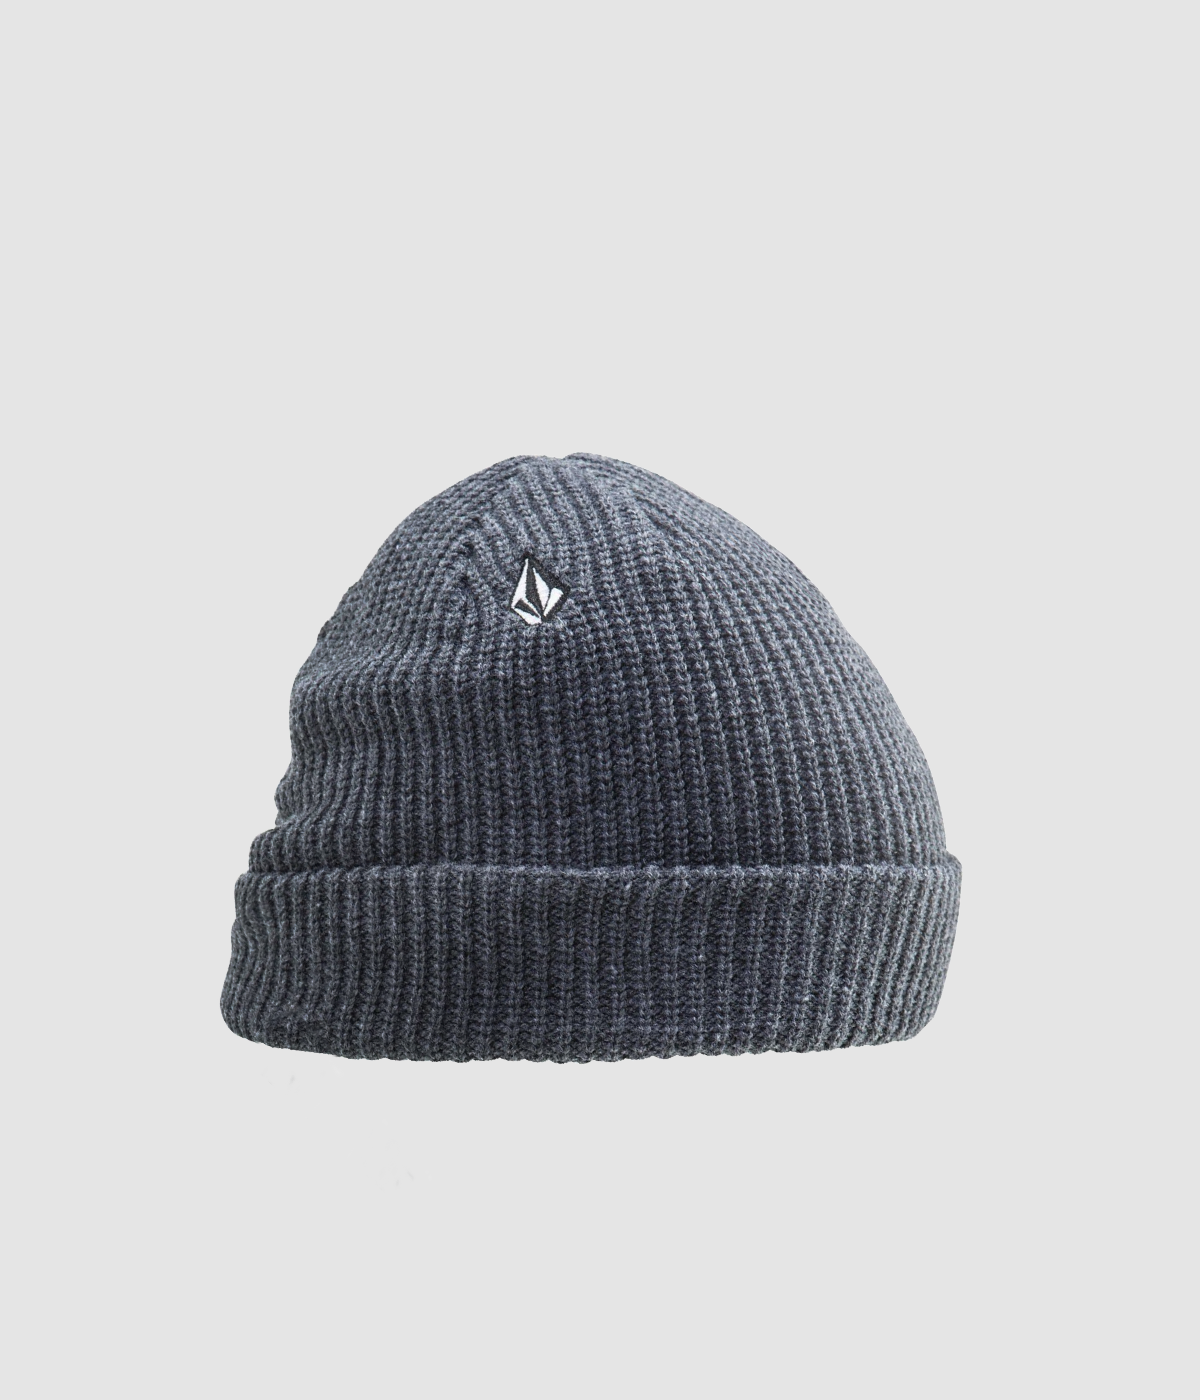 Volcom Full Stone Beanie in our Surfers' Christmas Gift Guide